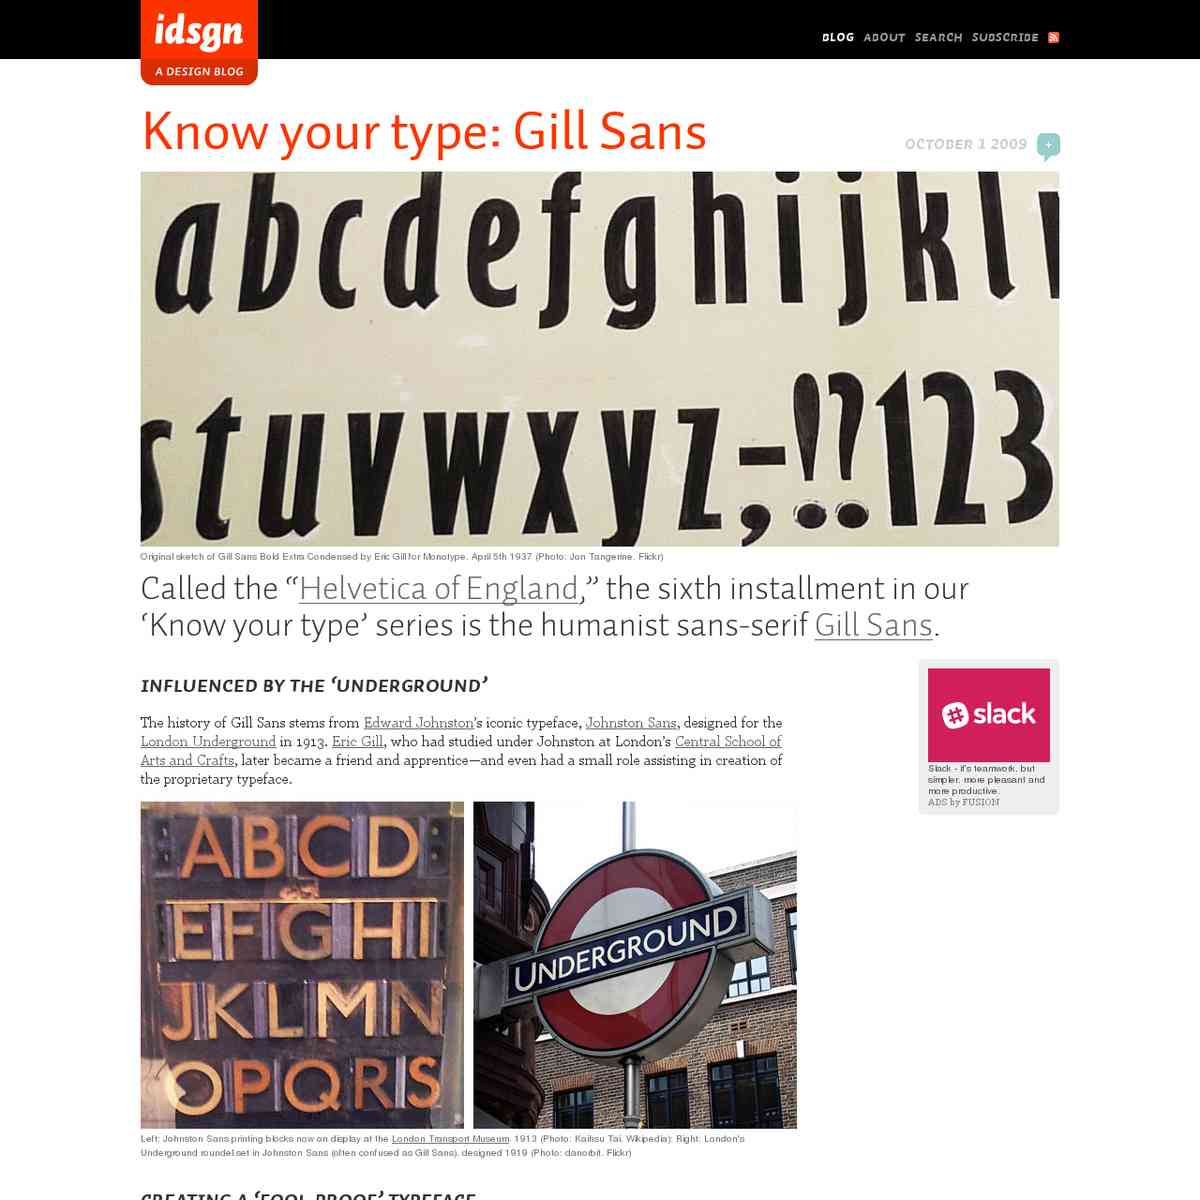 Know your type: Gill Sans